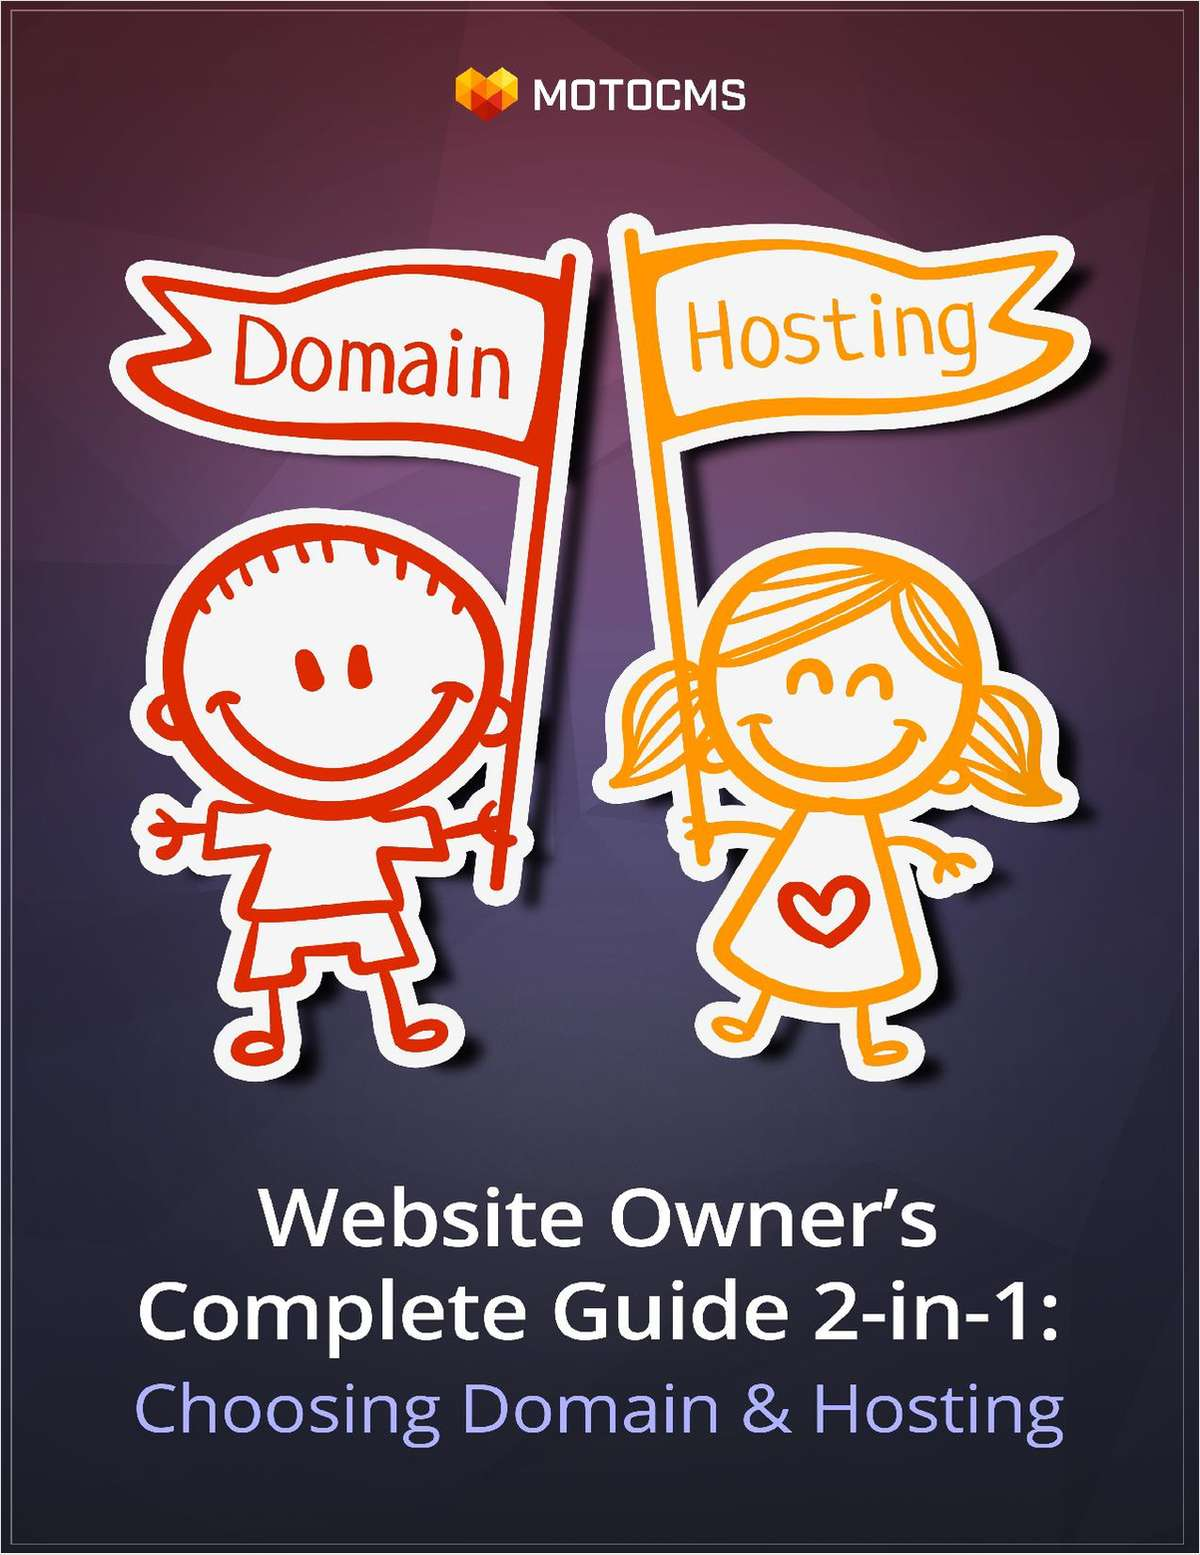 Website Owner's Complete Guide 2-in-1: Choosing Domain & Hosting